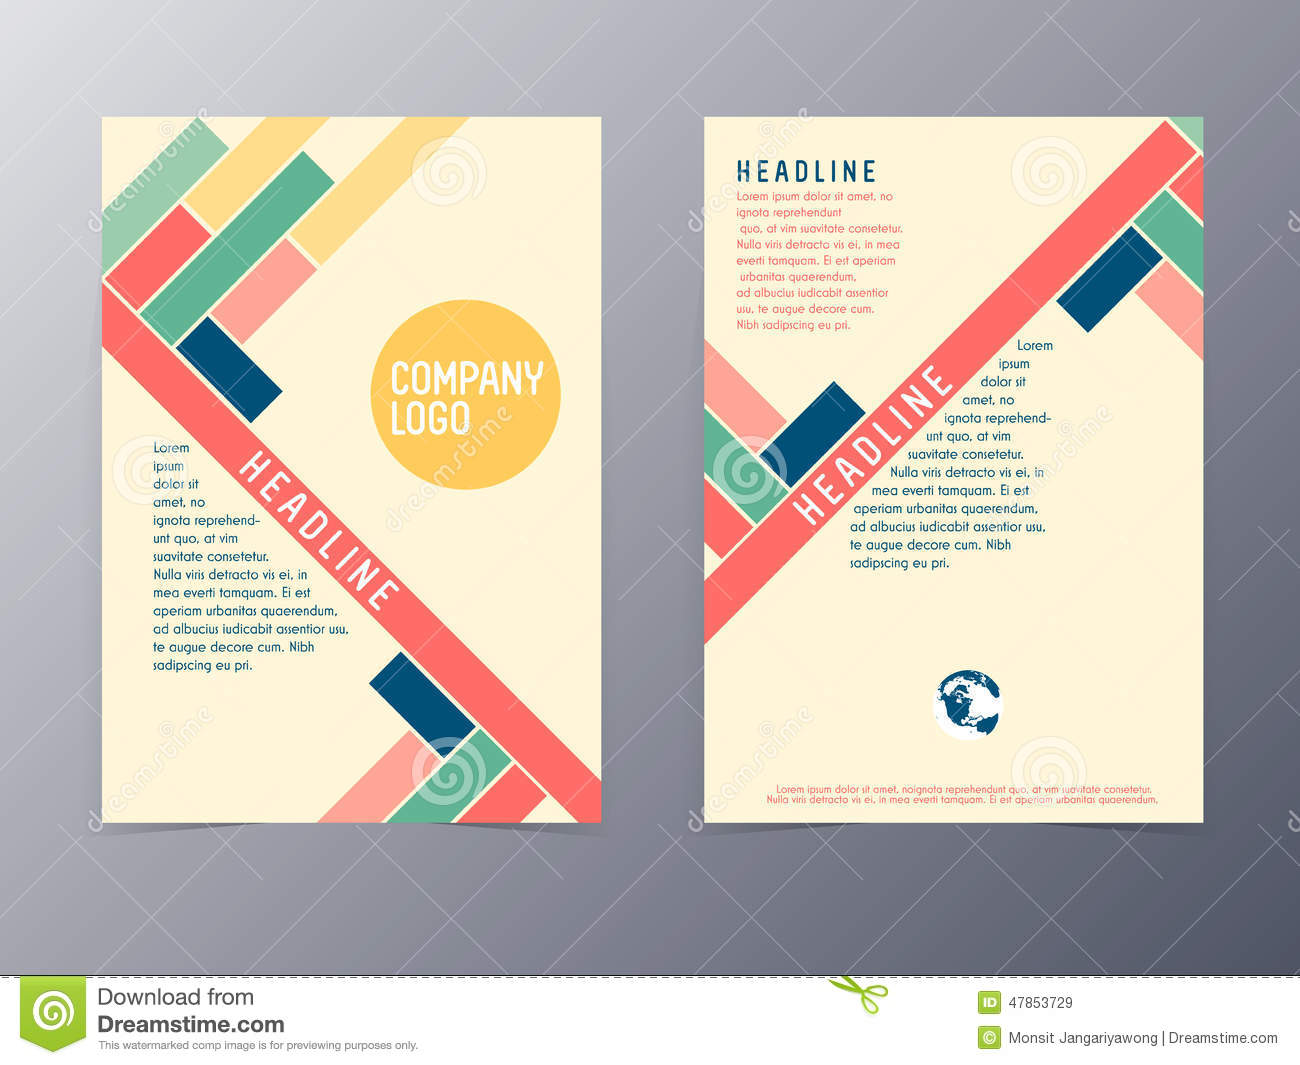 Graphic Design Prices For Business Cards